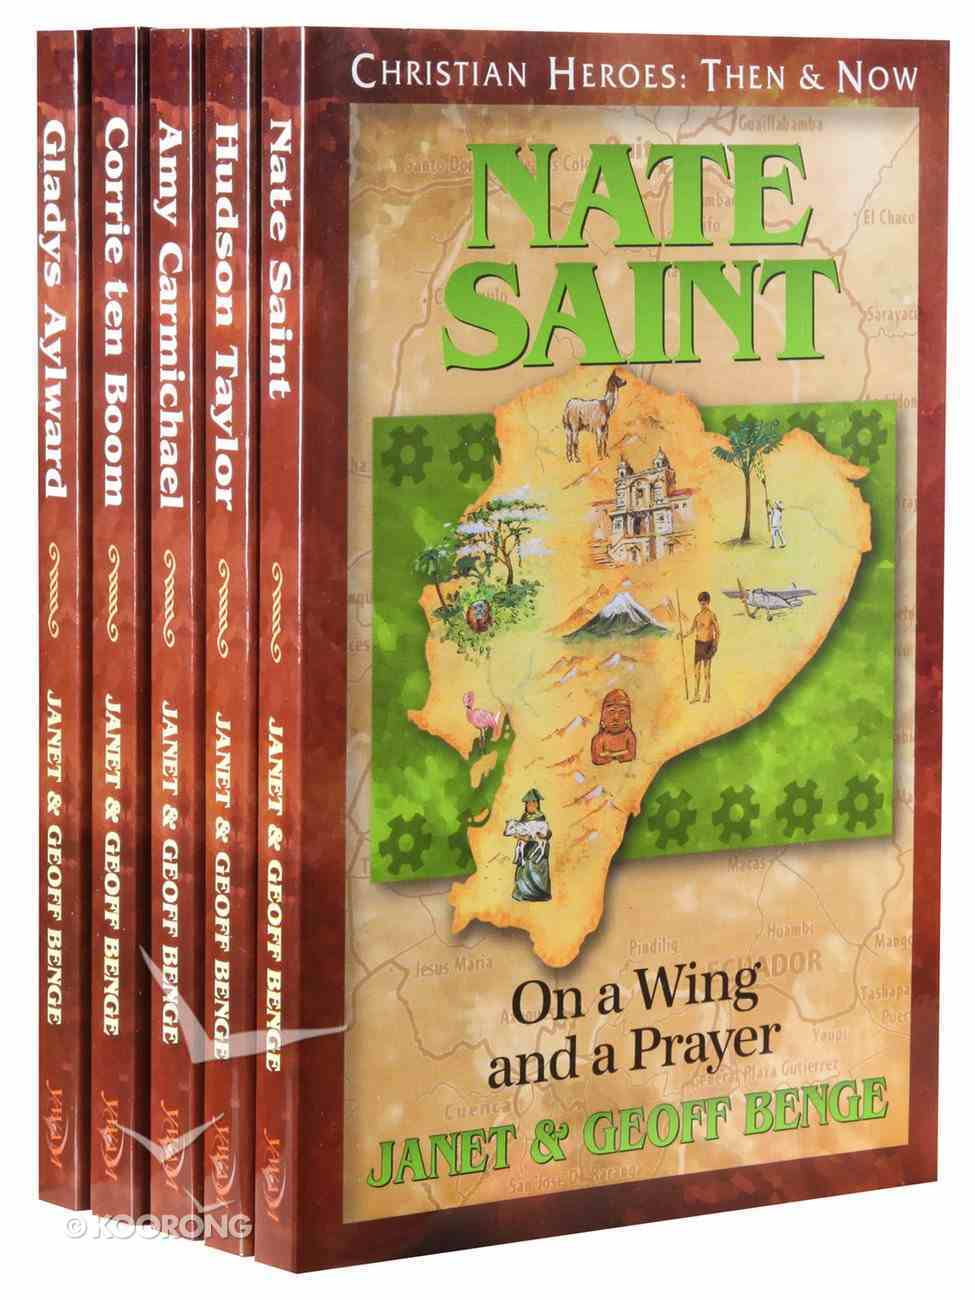 Gift Set 01-05 (Christian Heroes Then & Now Series) Pack